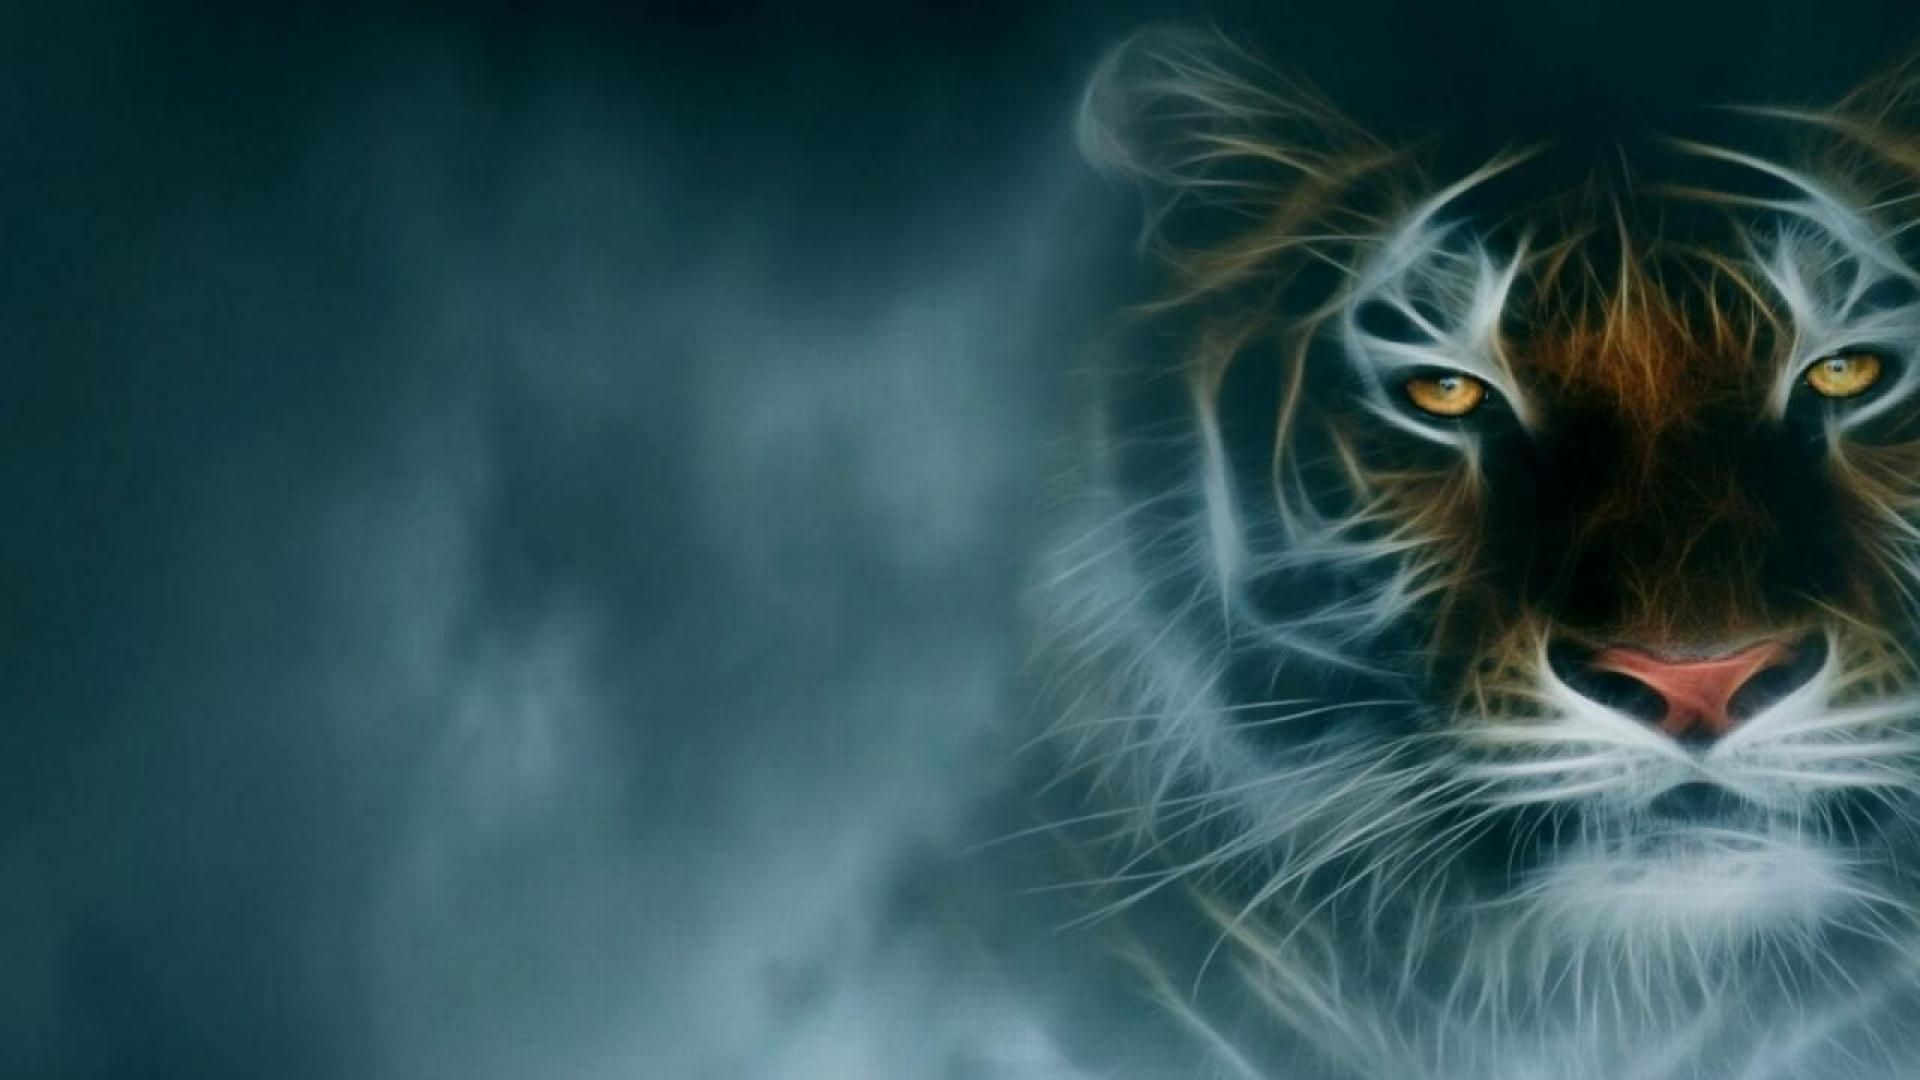 fractal tiger hd desktop background wallpaper free | amazing fractal